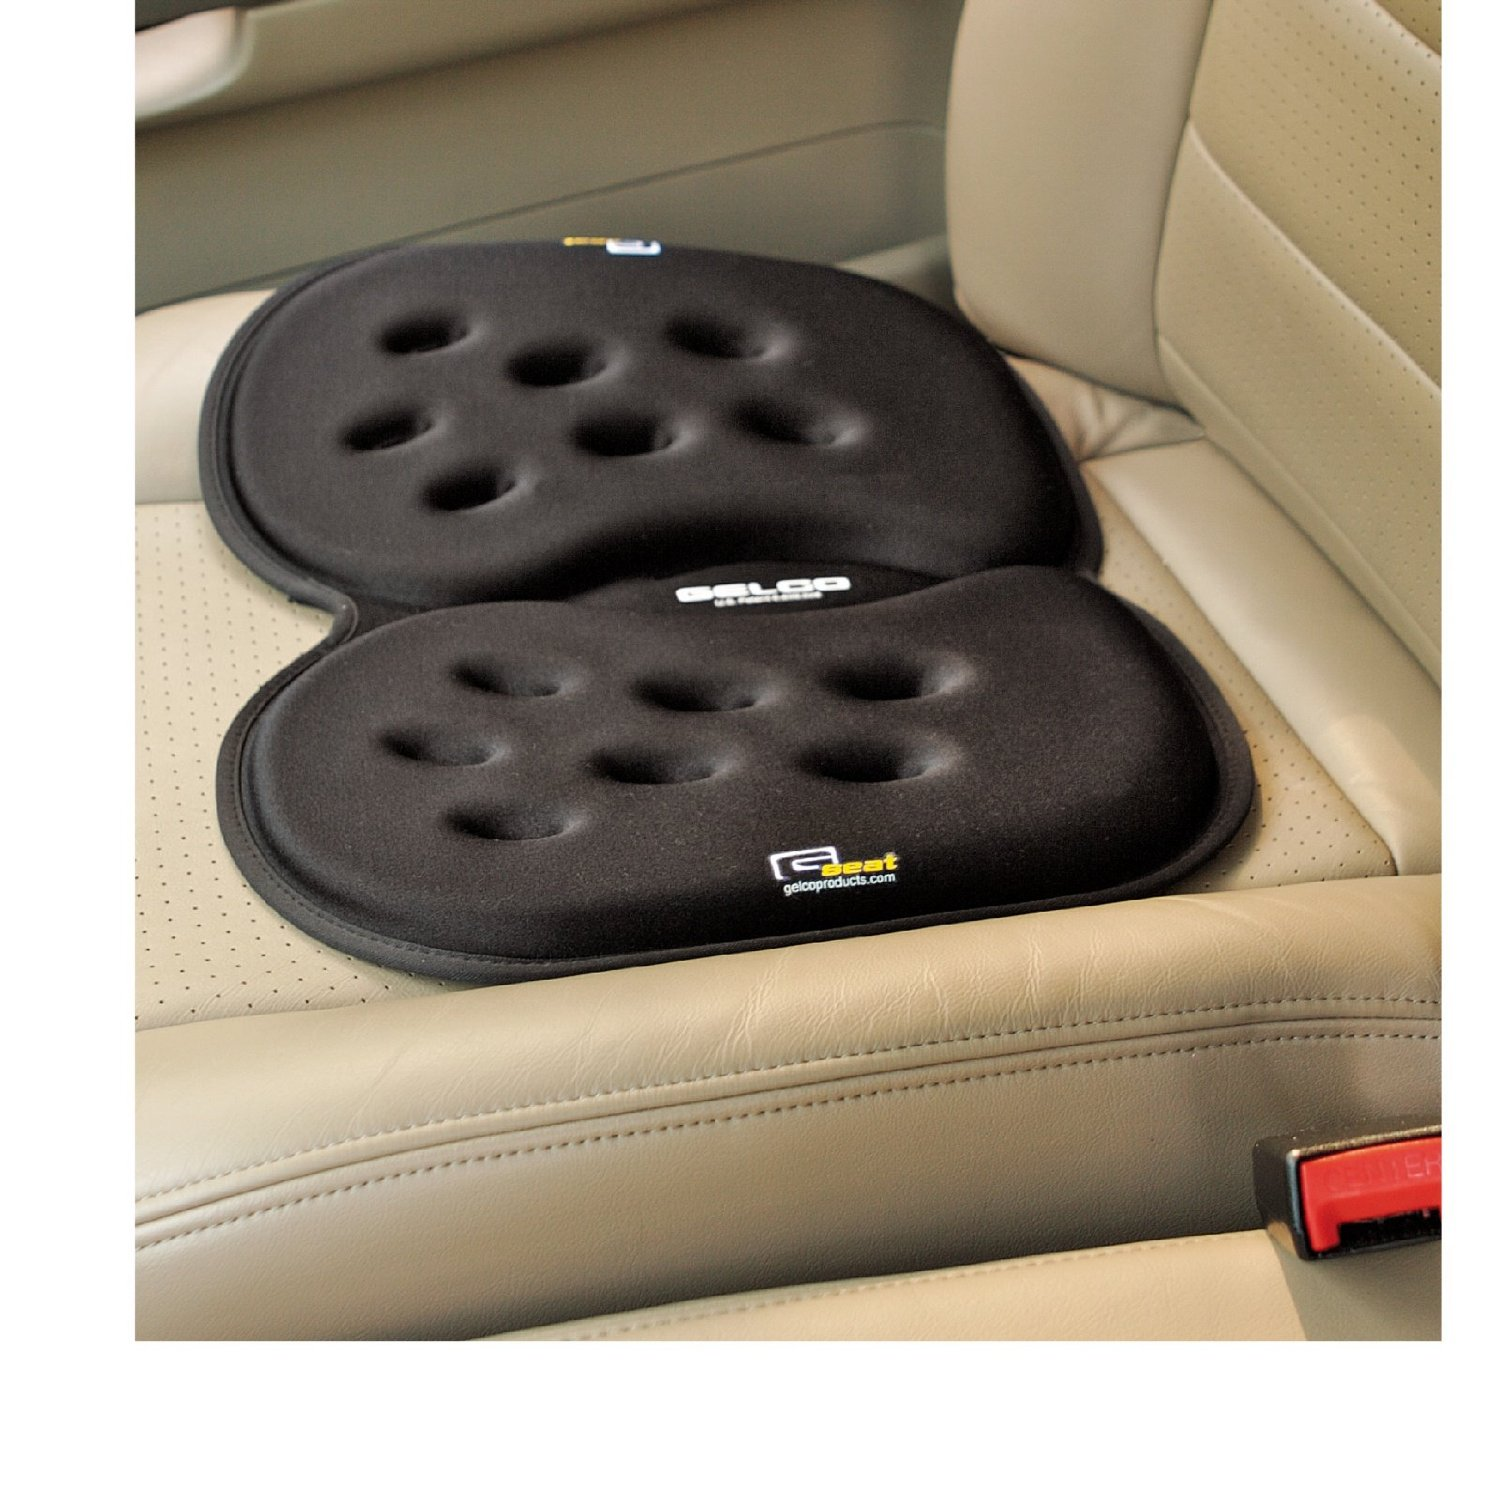 GSeat Ultra Orthopedic Comfort Cushion